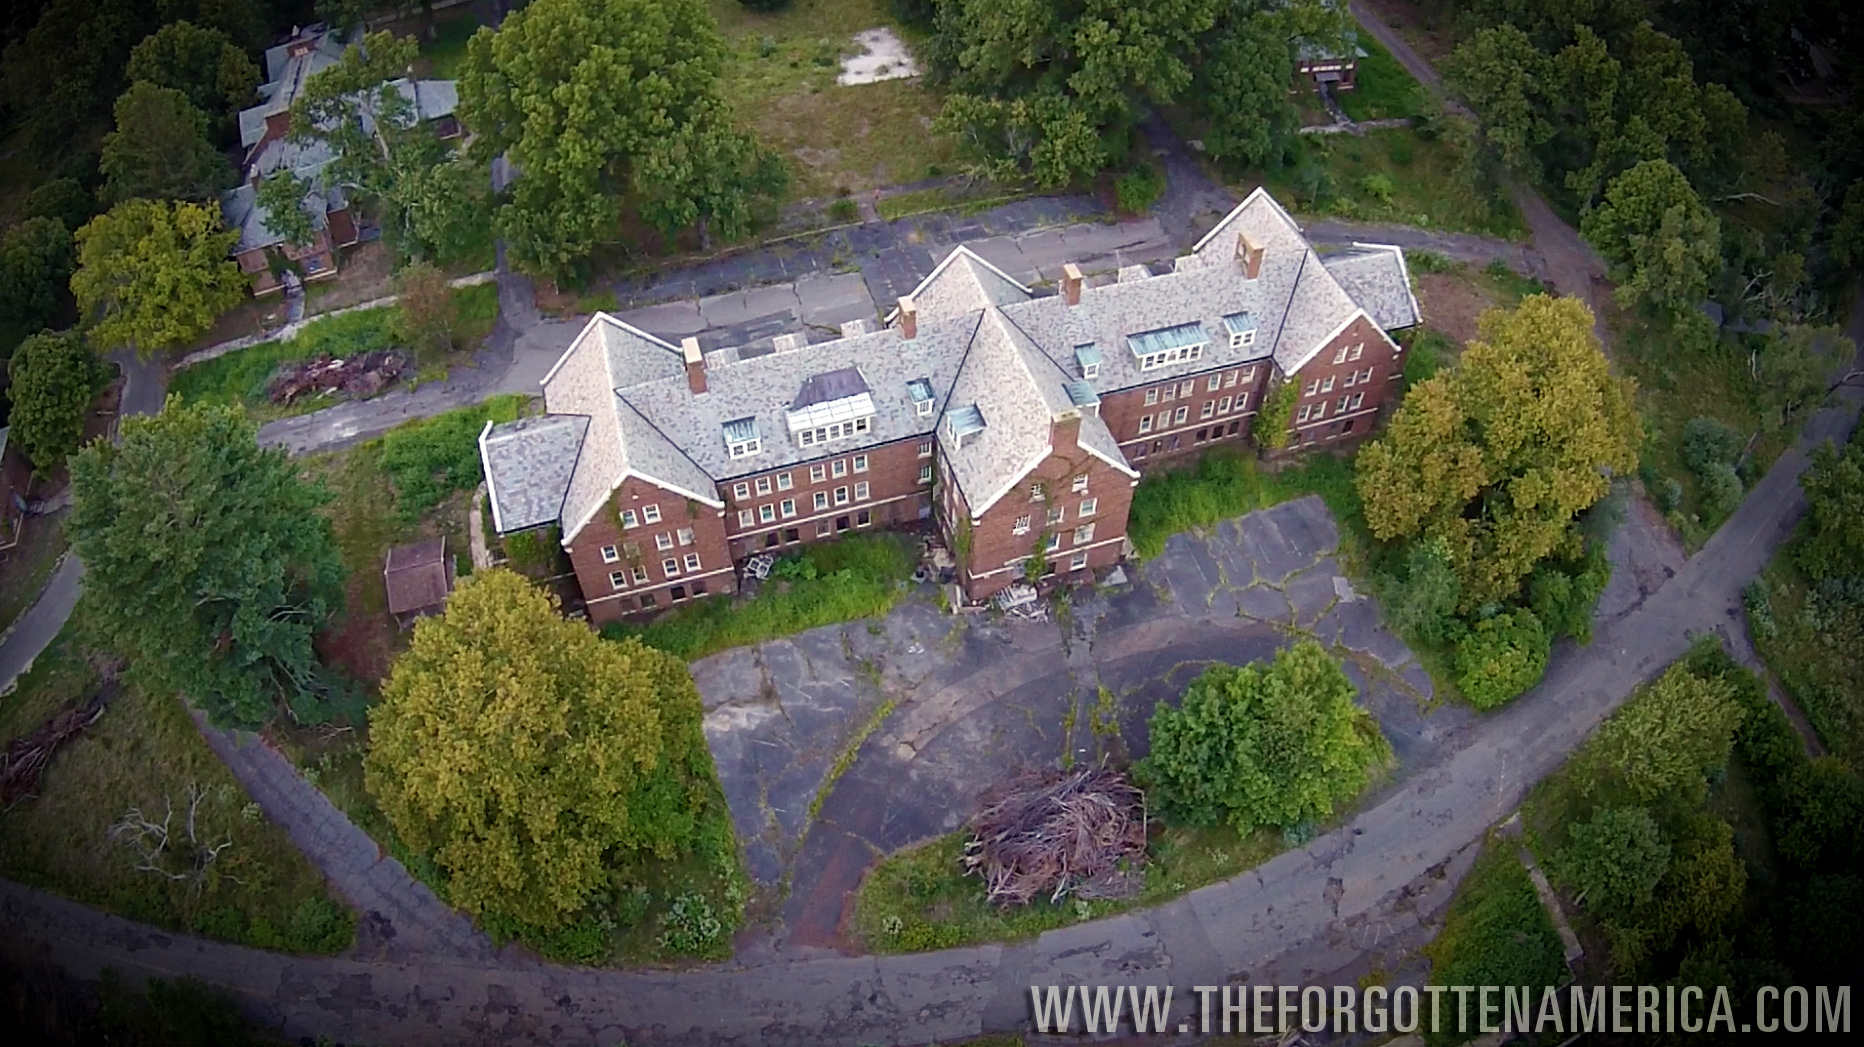 Photos of Marlboro Psychiatric Hospital never seen before! Wait till you see the full gallery!